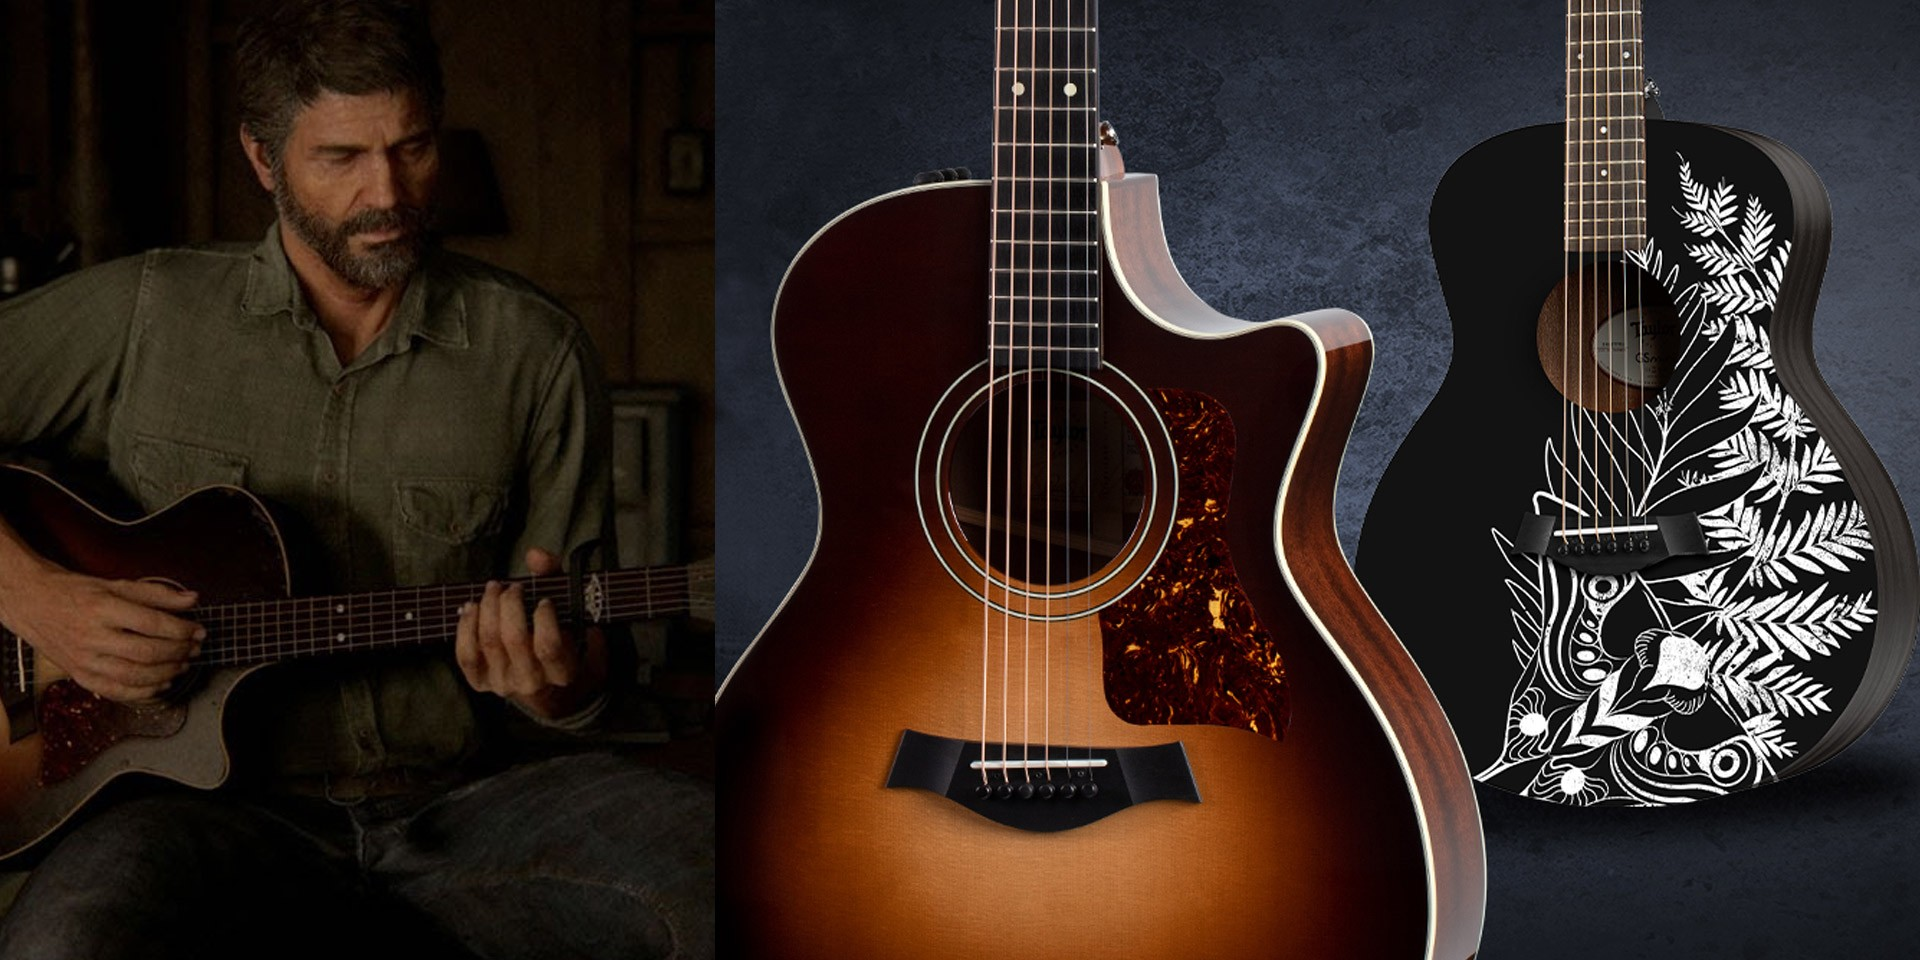 Taylor to release limited edition The Last of Us Part 2 guitars